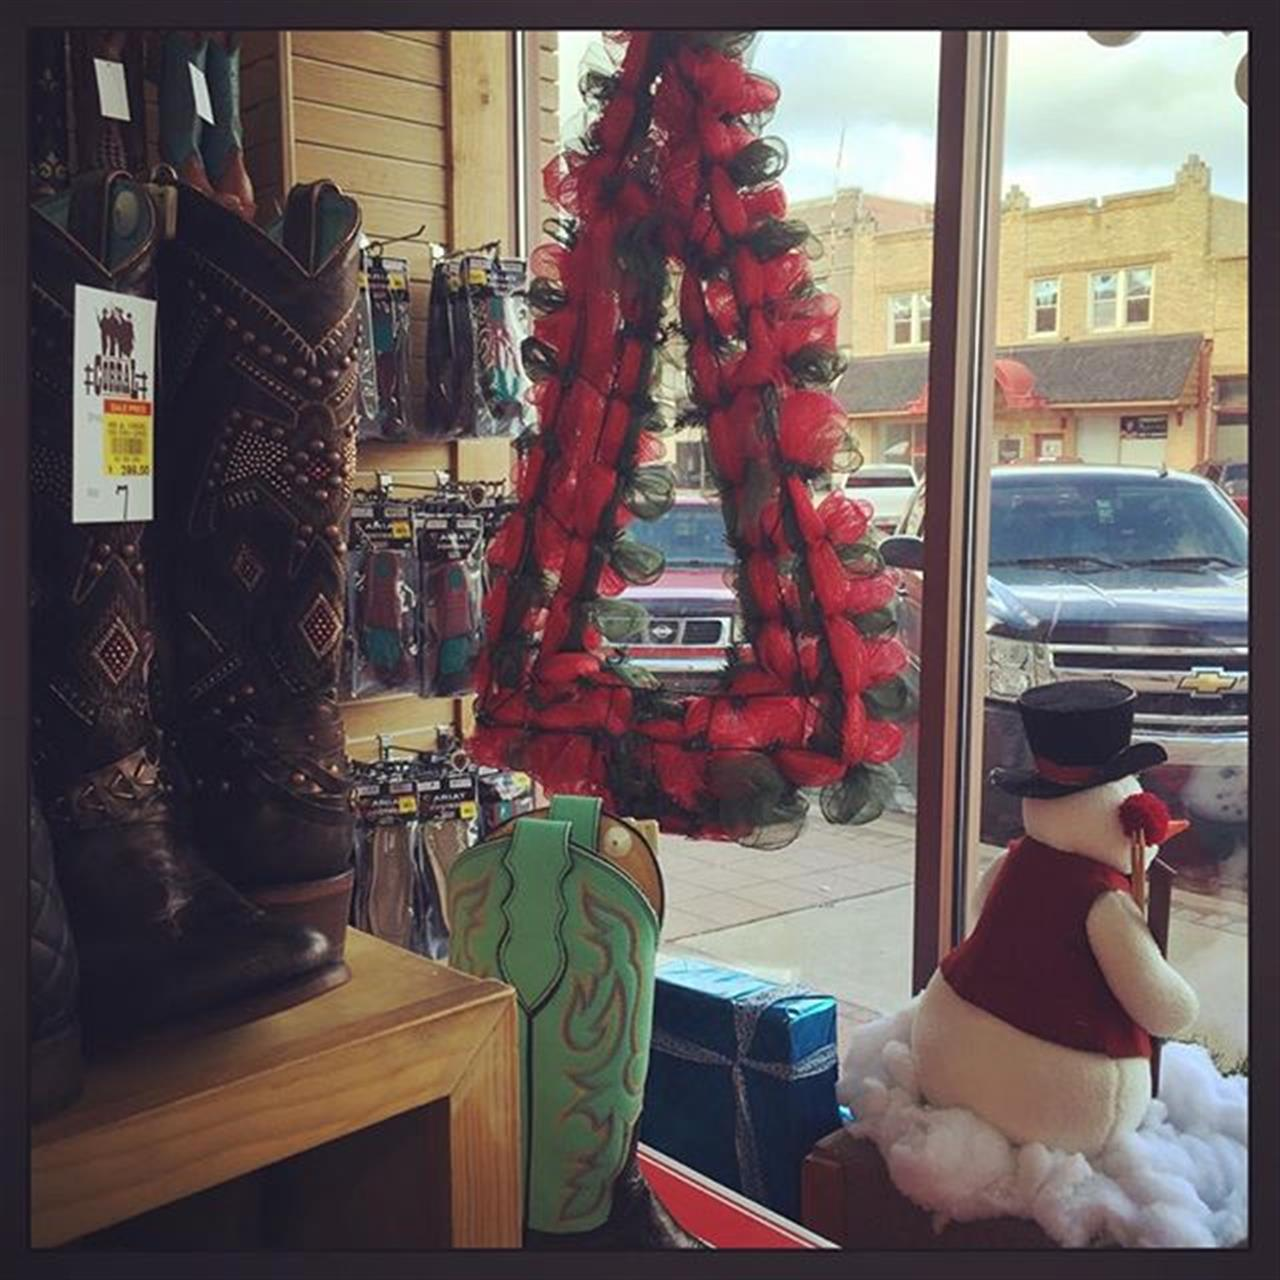 #oklahoma #boots #cowboychristmas #cowgirlboots #oklahomalife #westernwear #realestate #ranches #realestate Call #themillerdreamteam #Conniemiller #vjmiller #mdtrealestate #leadingrelocal